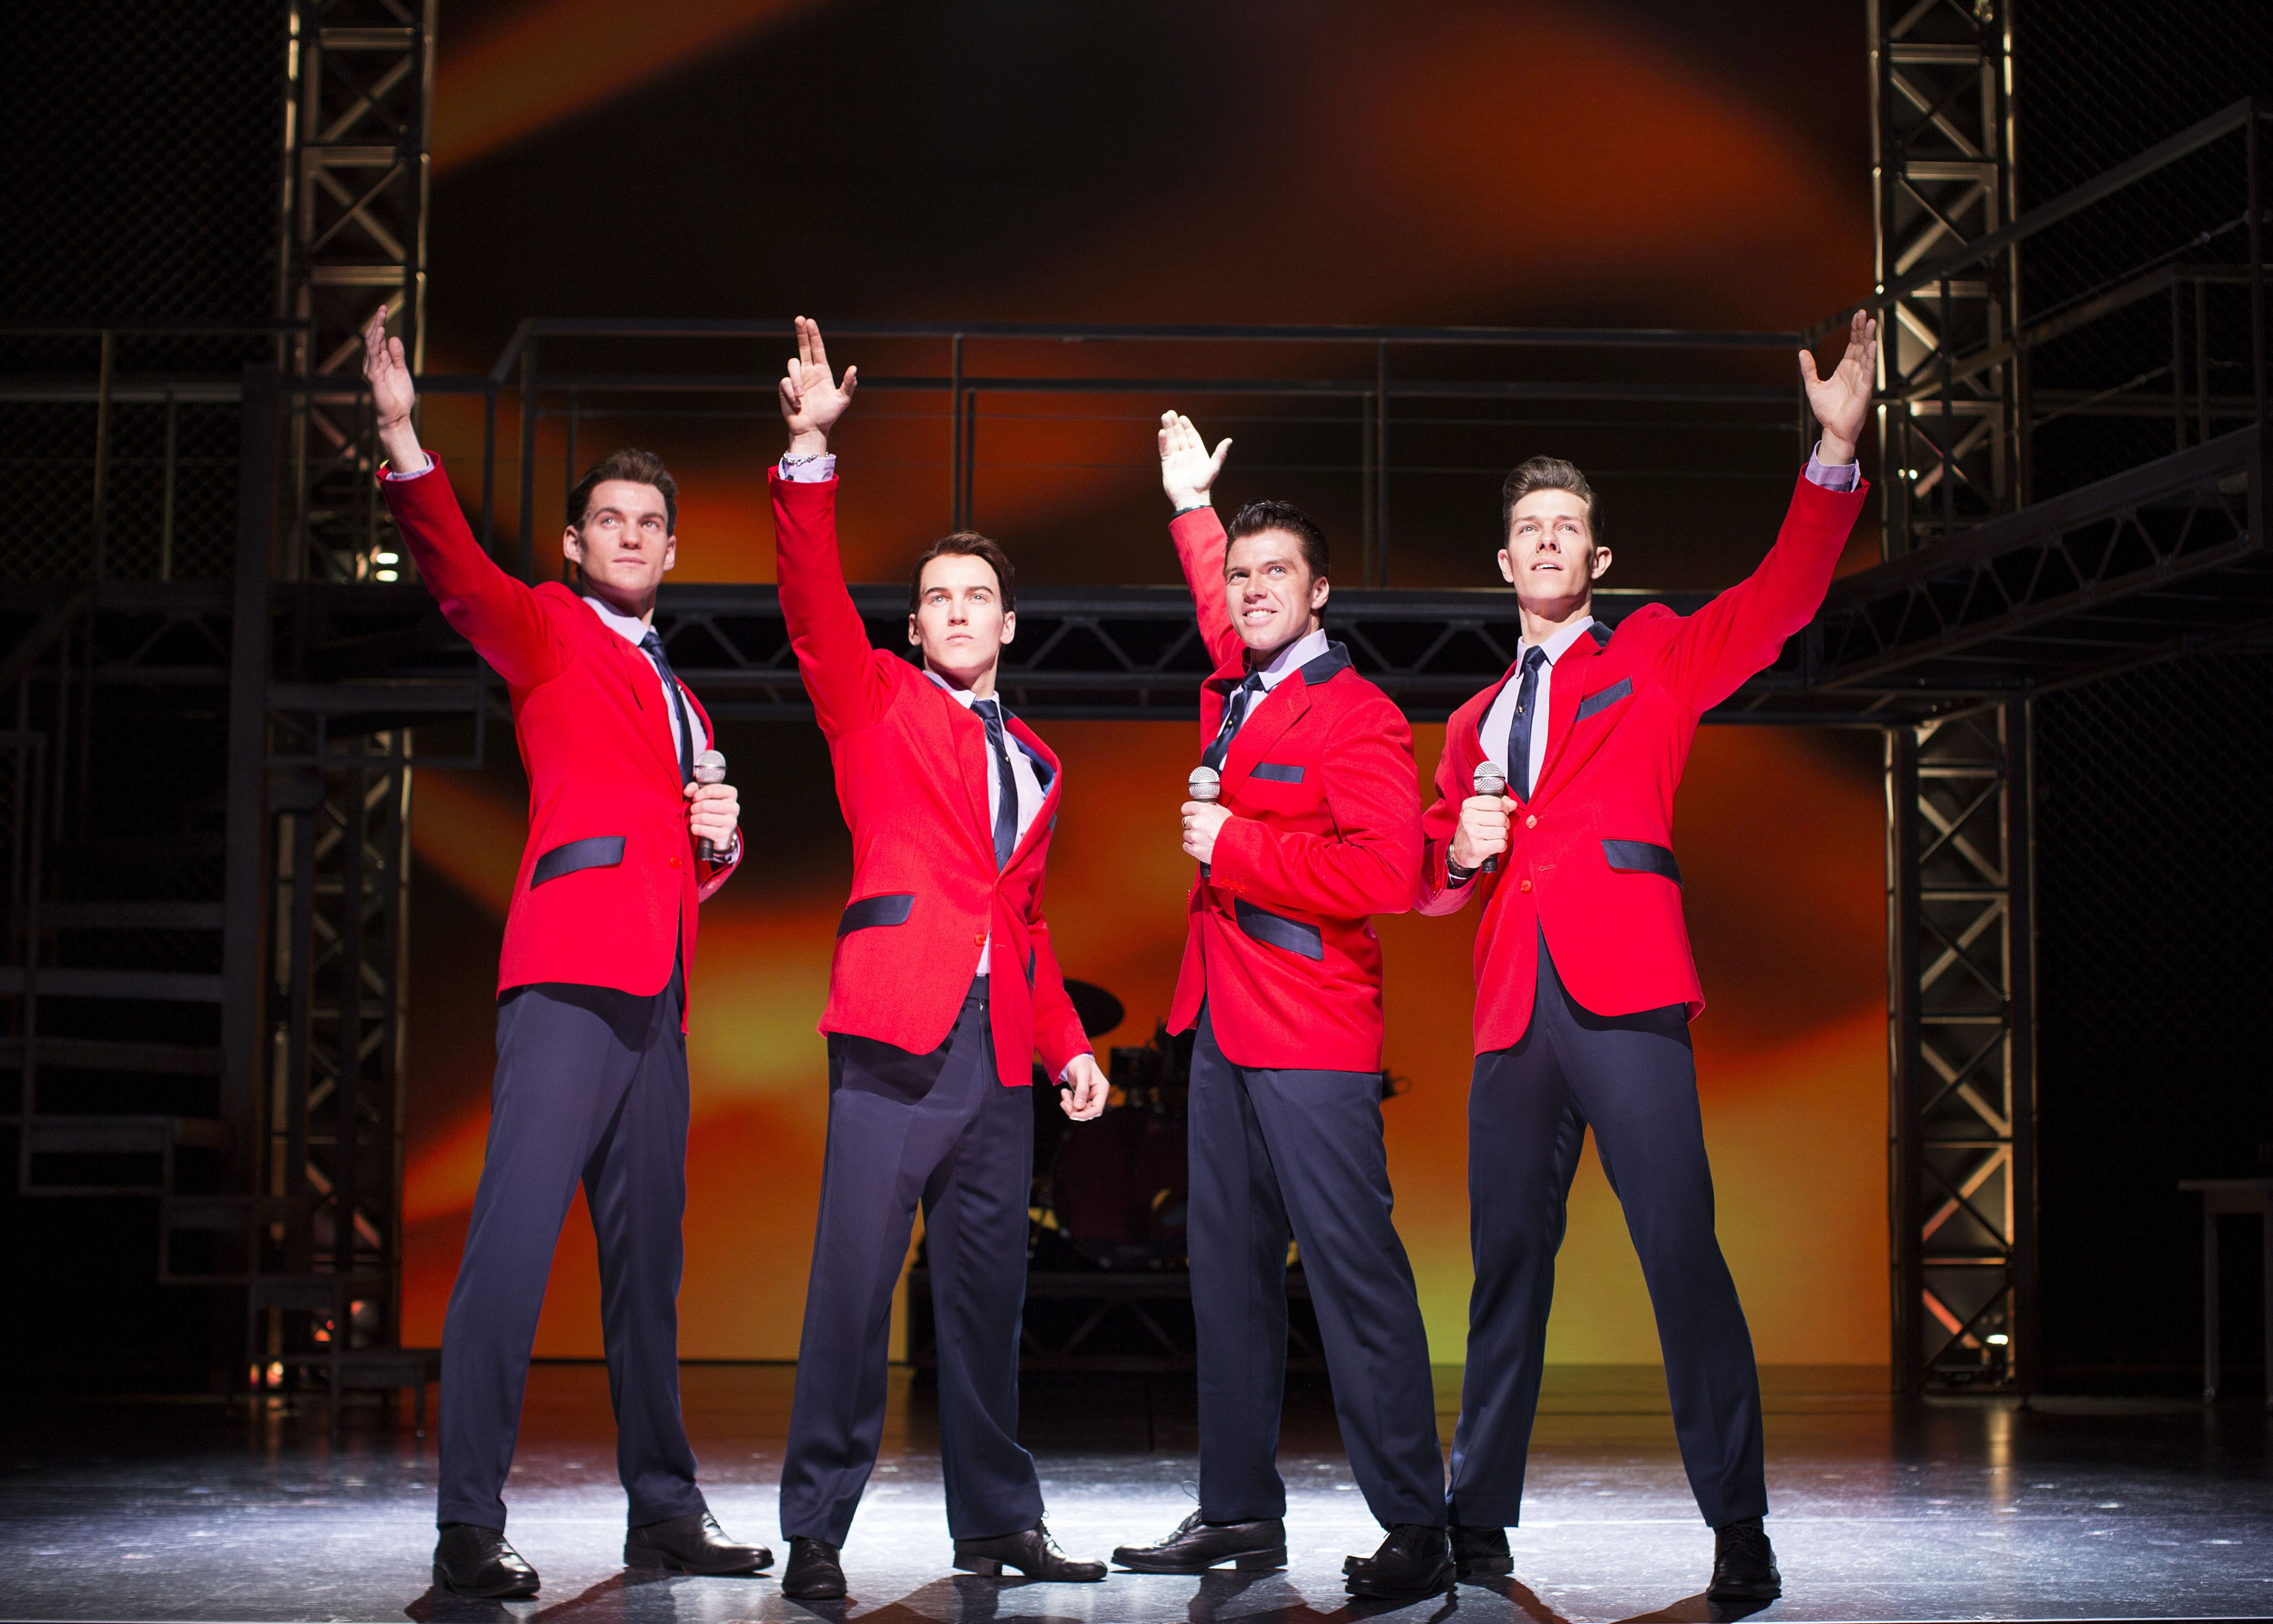 The Jersey Boys have arrived in Baltimore! Don't miss this ...